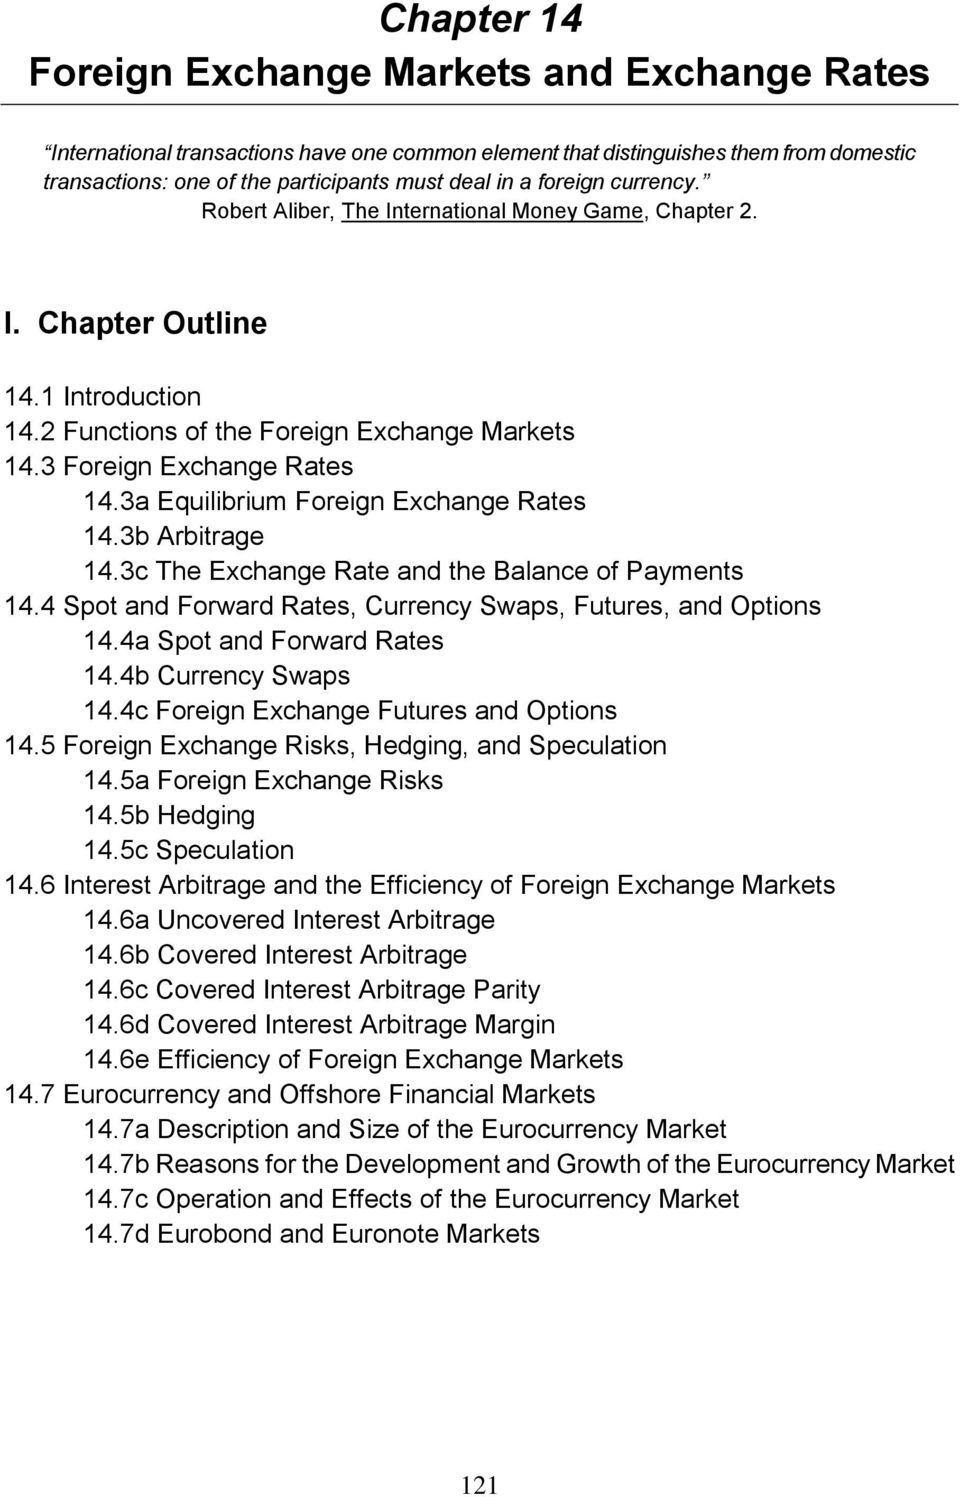 3a Equilibrium Foreign Exchange Rates 14.3b Arbitrage 14.3c The Exchange Rate and the Balance of Payments 14.4 Spot and Forward Rates, Currency Swaps, Futures, and Options 14.